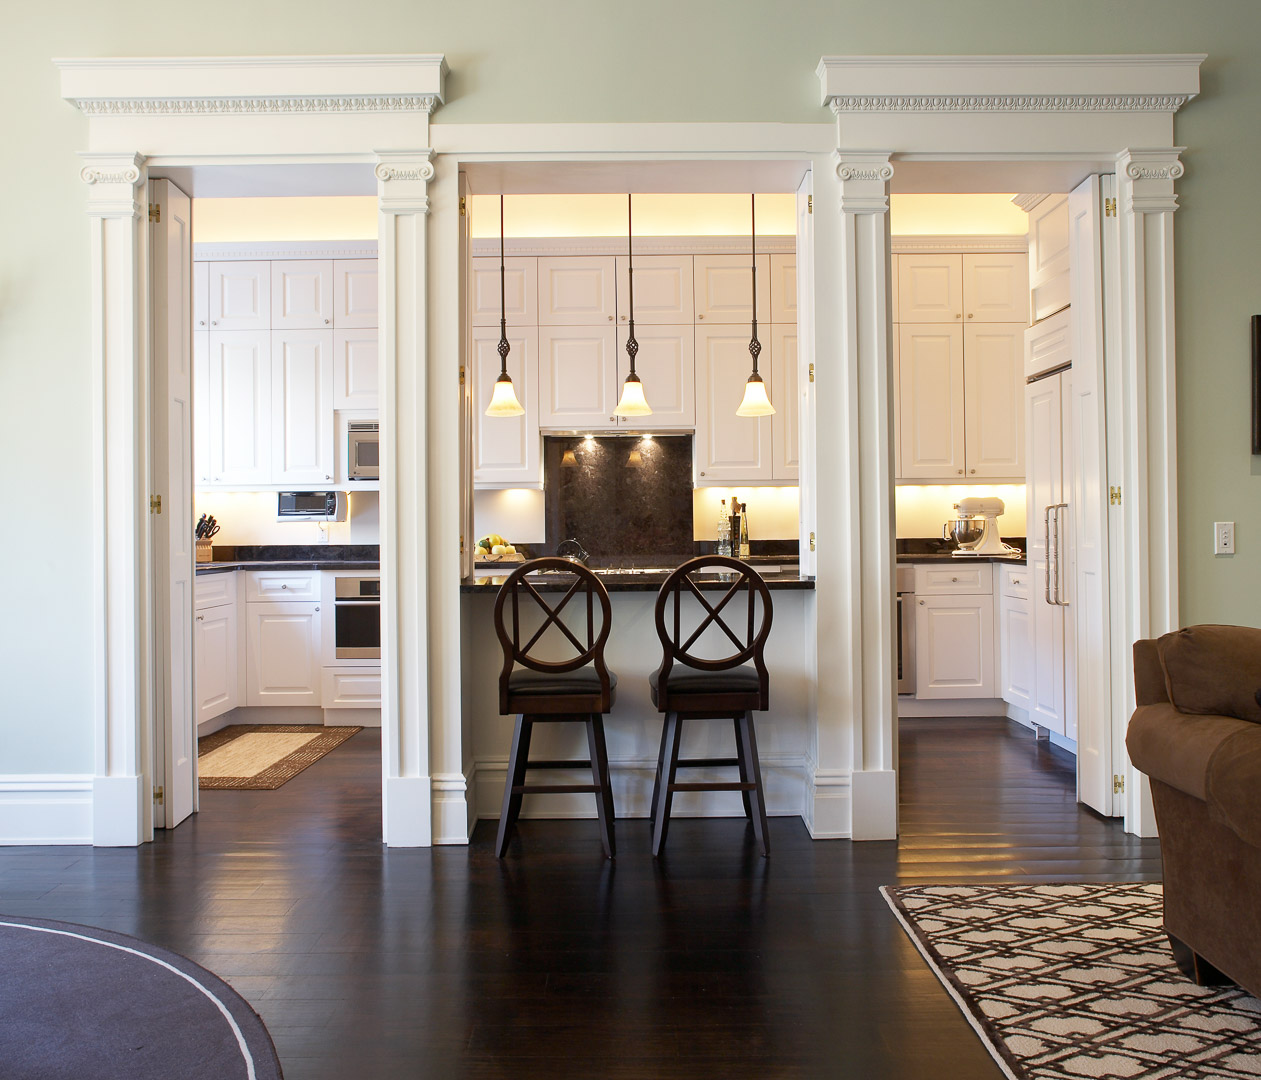 Waverly Place Townhouse-10.jpg